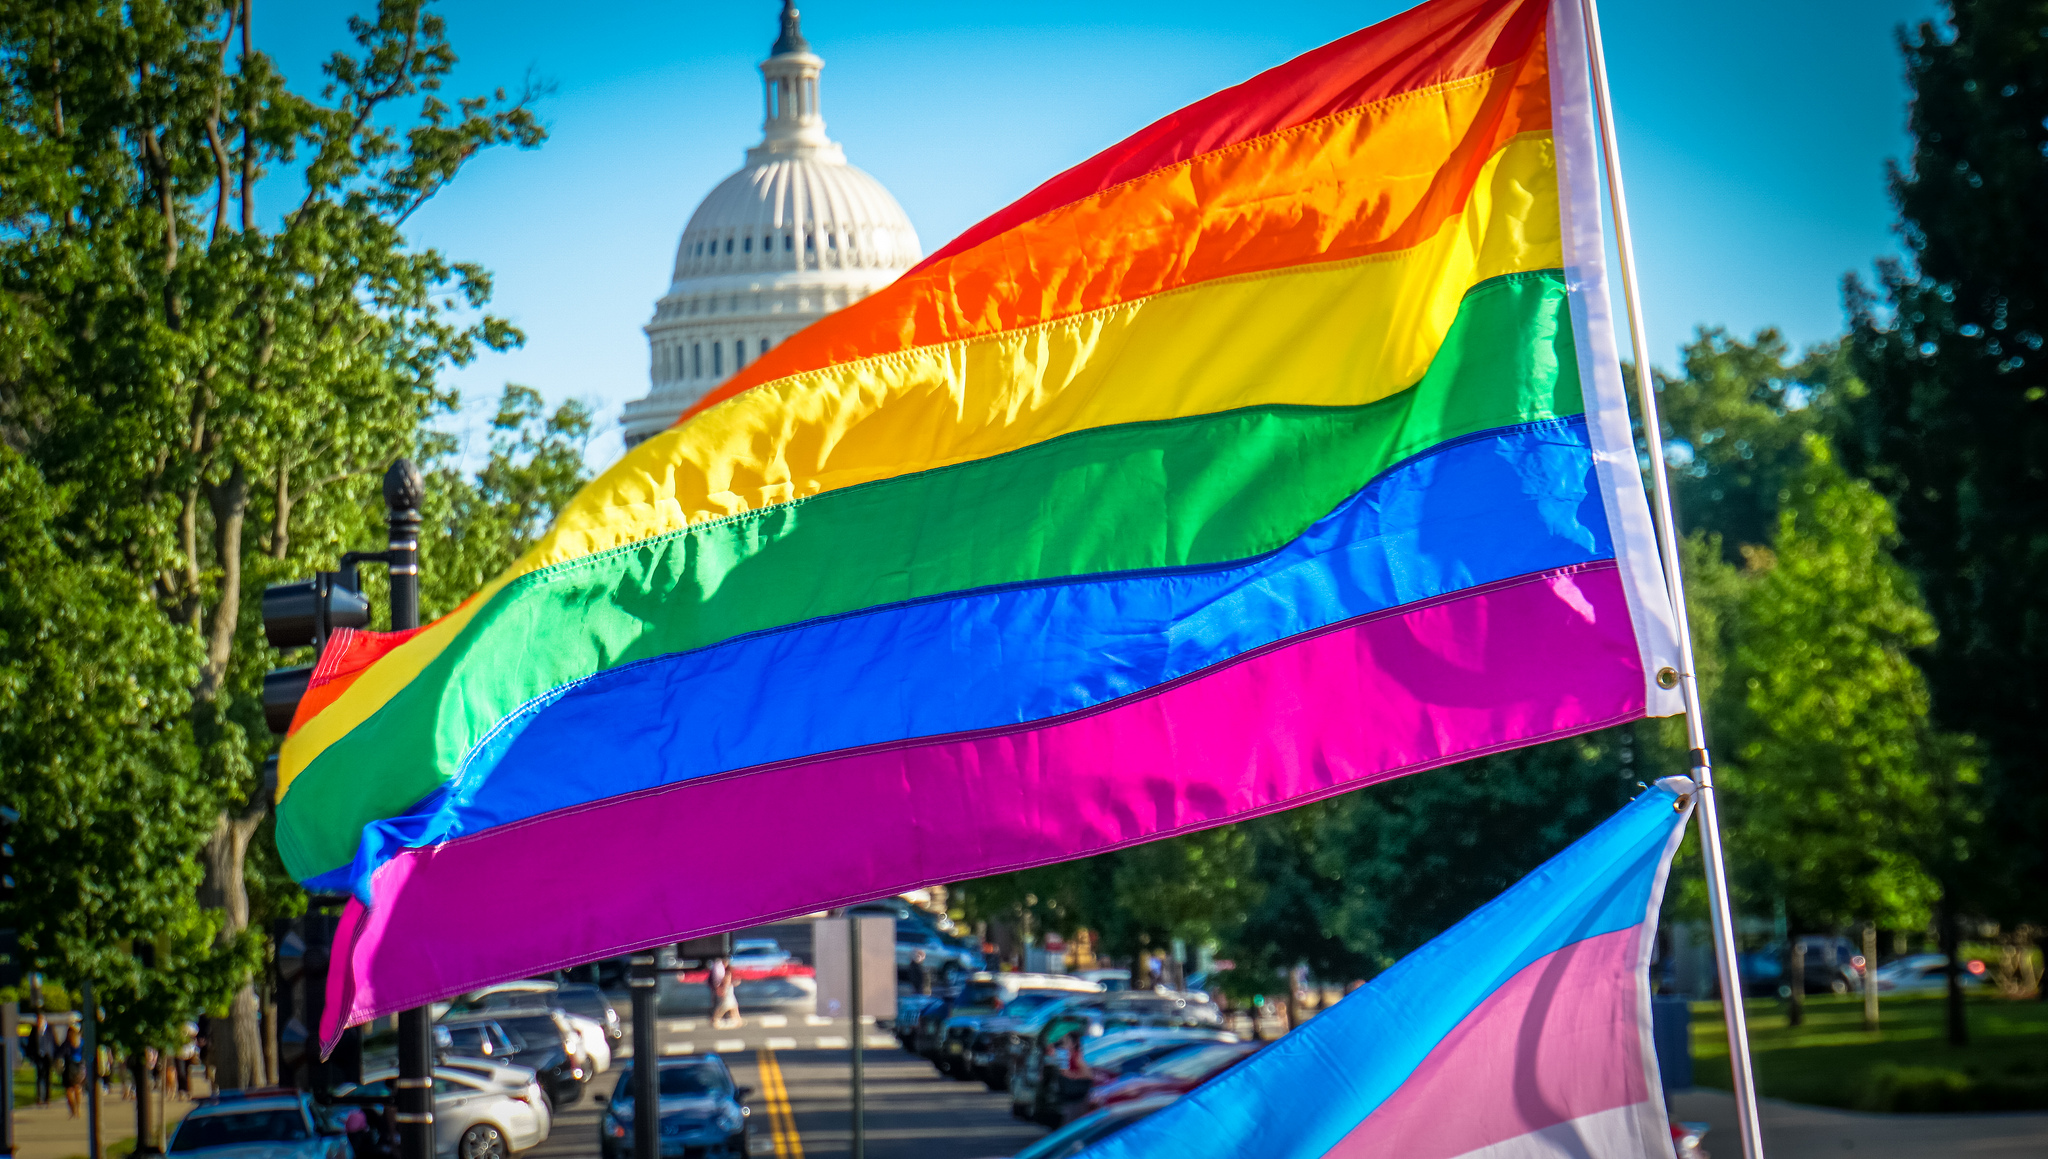 Capital Pride unveils a host of colorful, vibrant June events